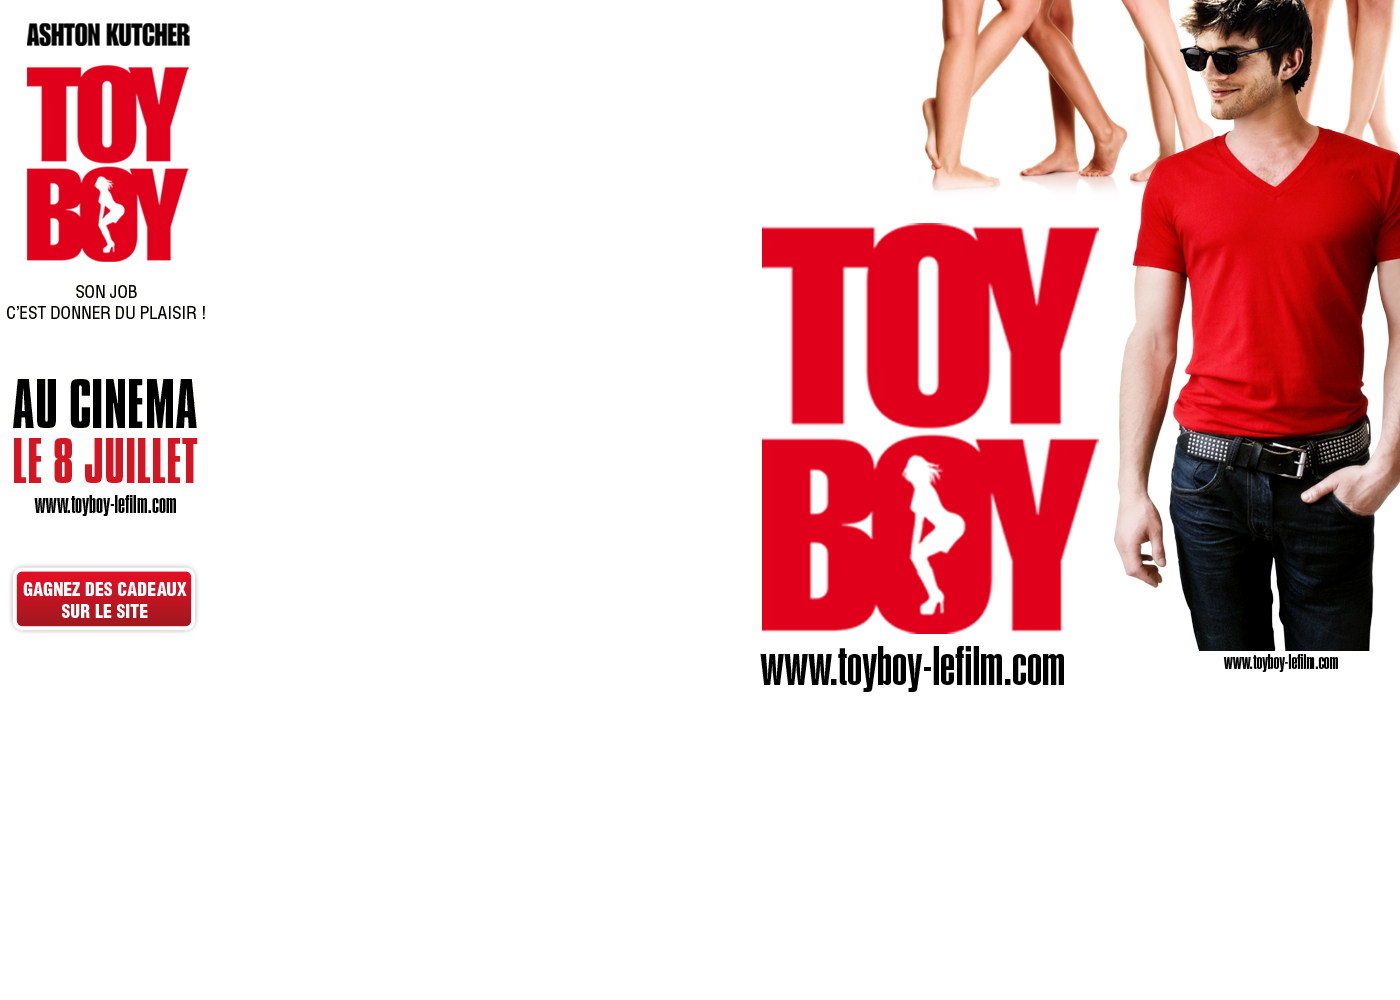 TOYBOY habillage sur le site MTV - background